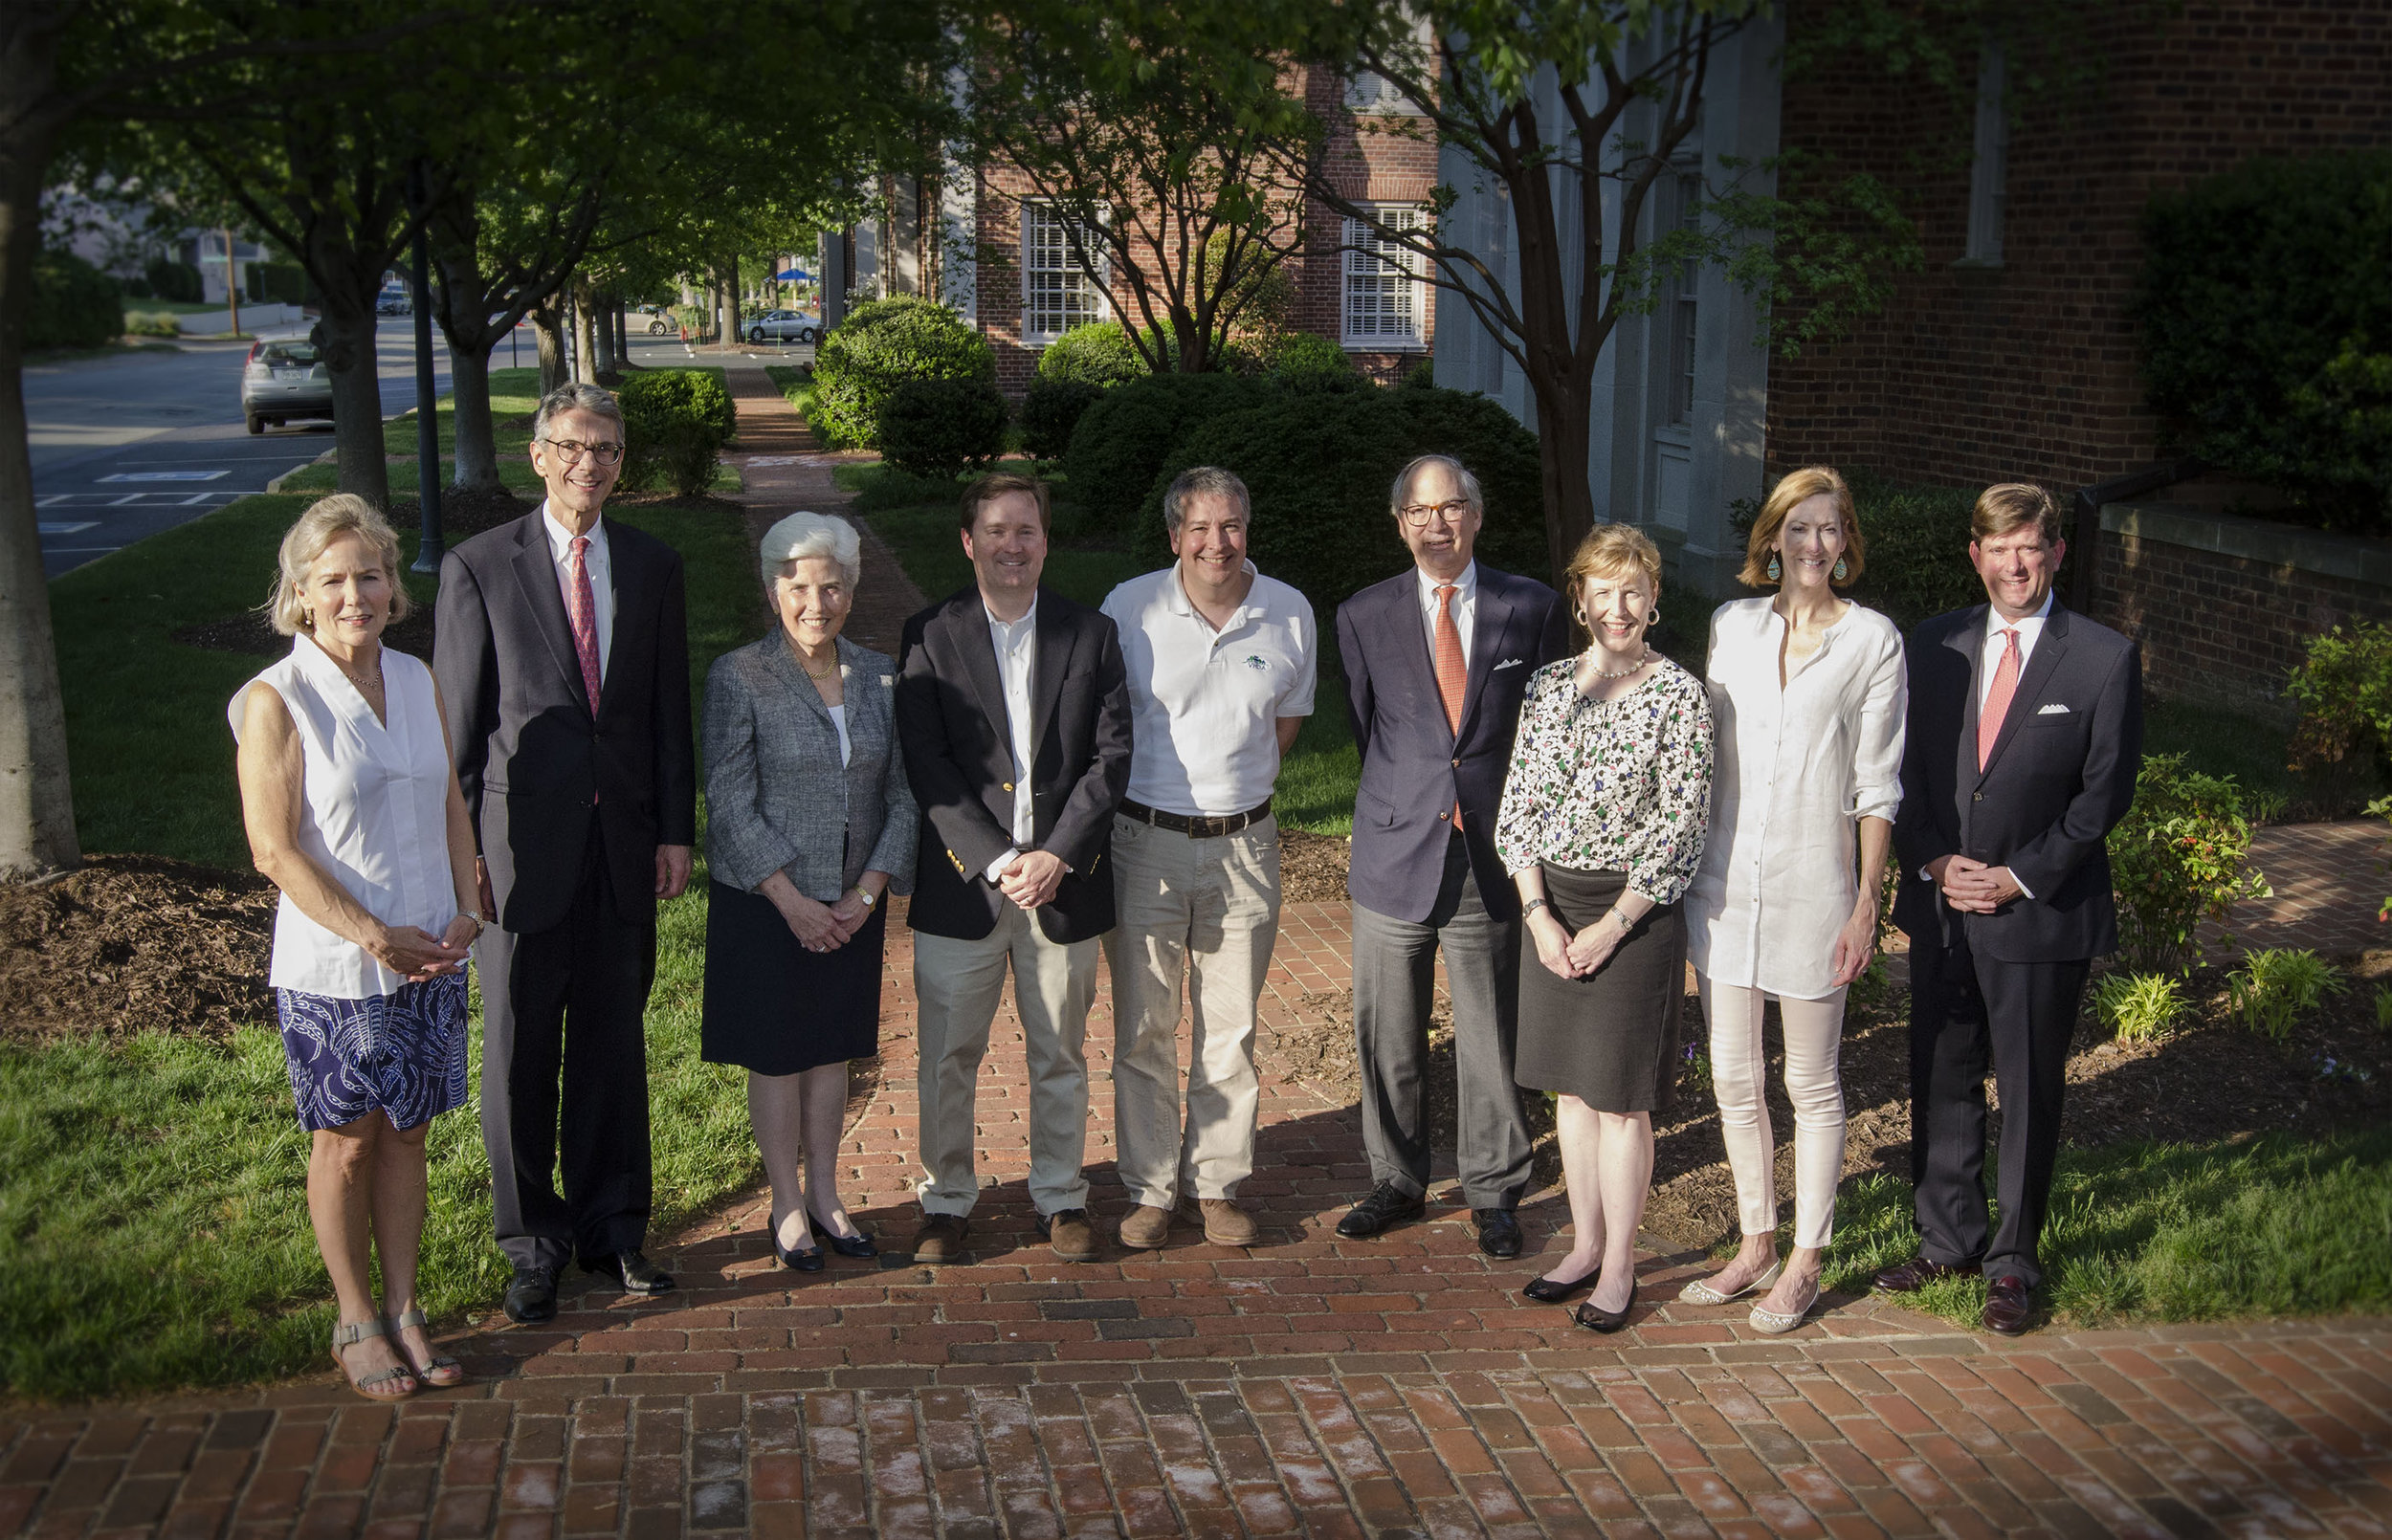 PNC (from left to right): Kathy Watson, Bill Garrison, Jane Peters, Les Yonce, Steve Mintz, Jay Johnston, Margaret Nimmo Holland, Kate Reynolds, Nelson Edmunds. Click the photo for a larger view.